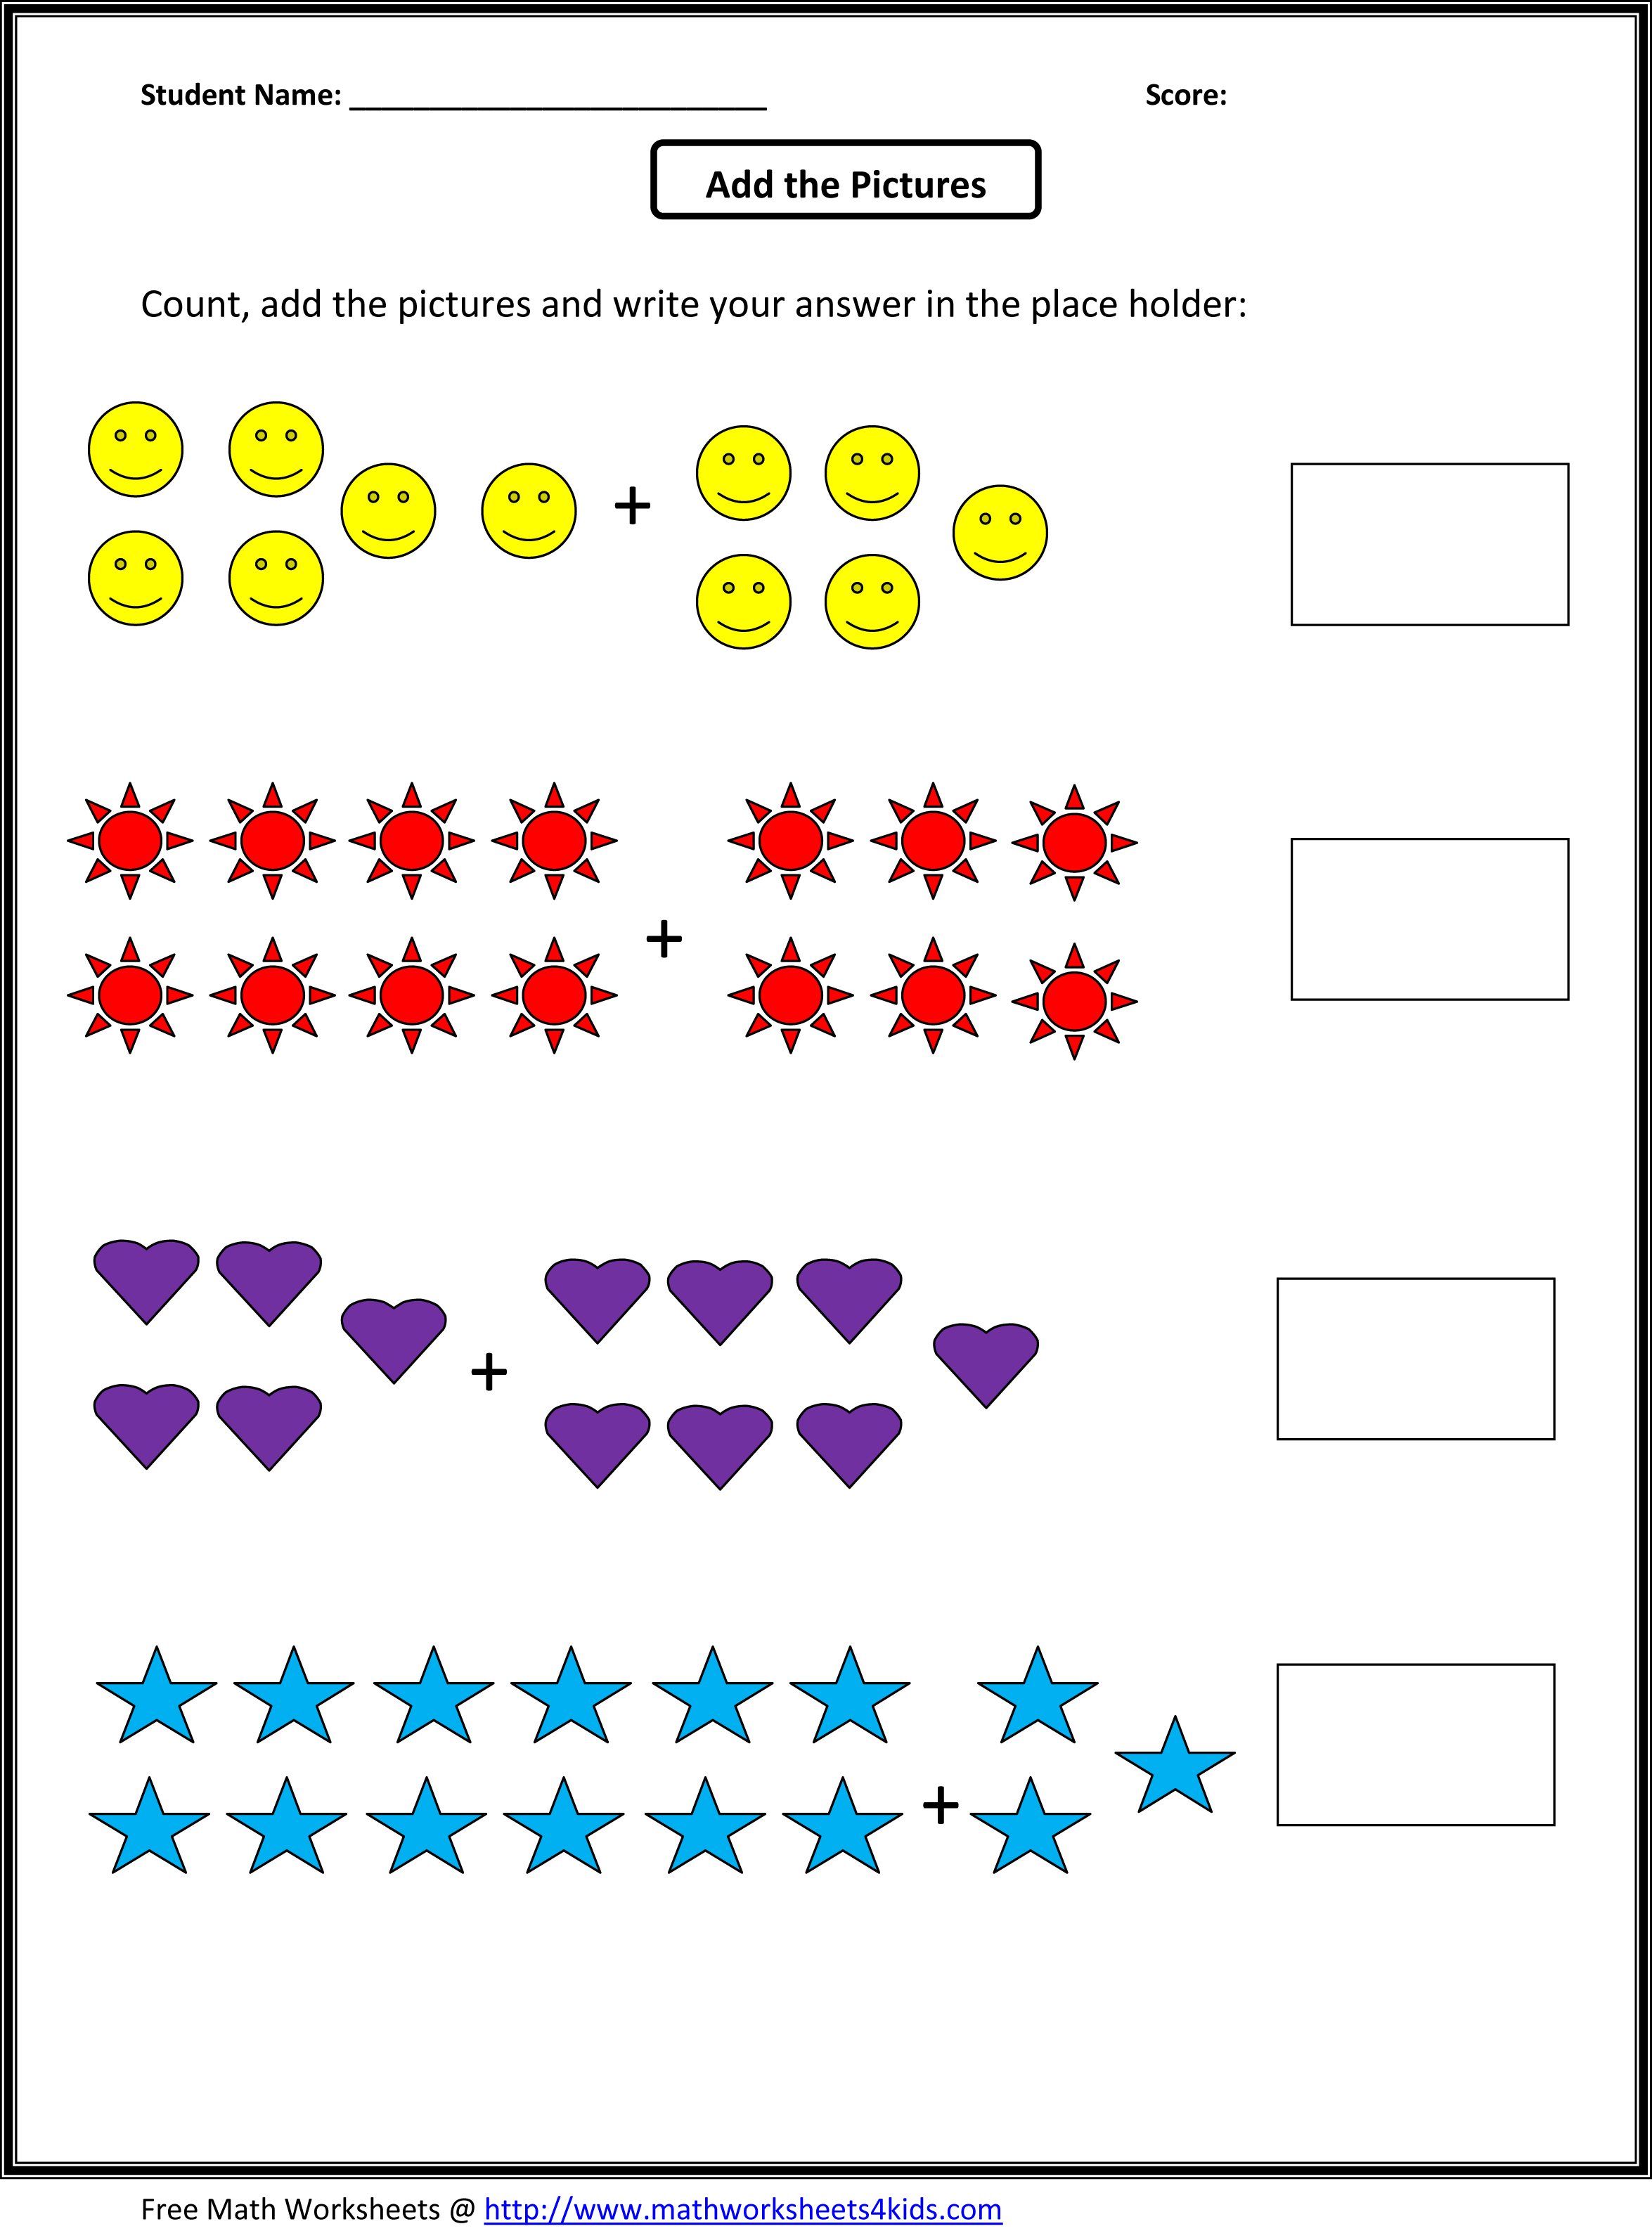 Weirdmailus  Wonderful Grade  Maths Worksheet  Reocurent With Magnificent Math Worksheets For St Grade Free  Reocurent With Cool Esl To Be Worksheet Also Free Worksheets For Nd Graders In Addition Understanding Multiplication Worksheets And Fha Streamline Calculation Worksheet As Well As Printable Worksheets For Kindergarten Sight Words Additionally Ph Phonics Worksheets From Reocurentcom With Weirdmailus  Magnificent Grade  Maths Worksheet  Reocurent With Cool Math Worksheets For St Grade Free  Reocurent And Wonderful Esl To Be Worksheet Also Free Worksheets For Nd Graders In Addition Understanding Multiplication Worksheets From Reocurentcom